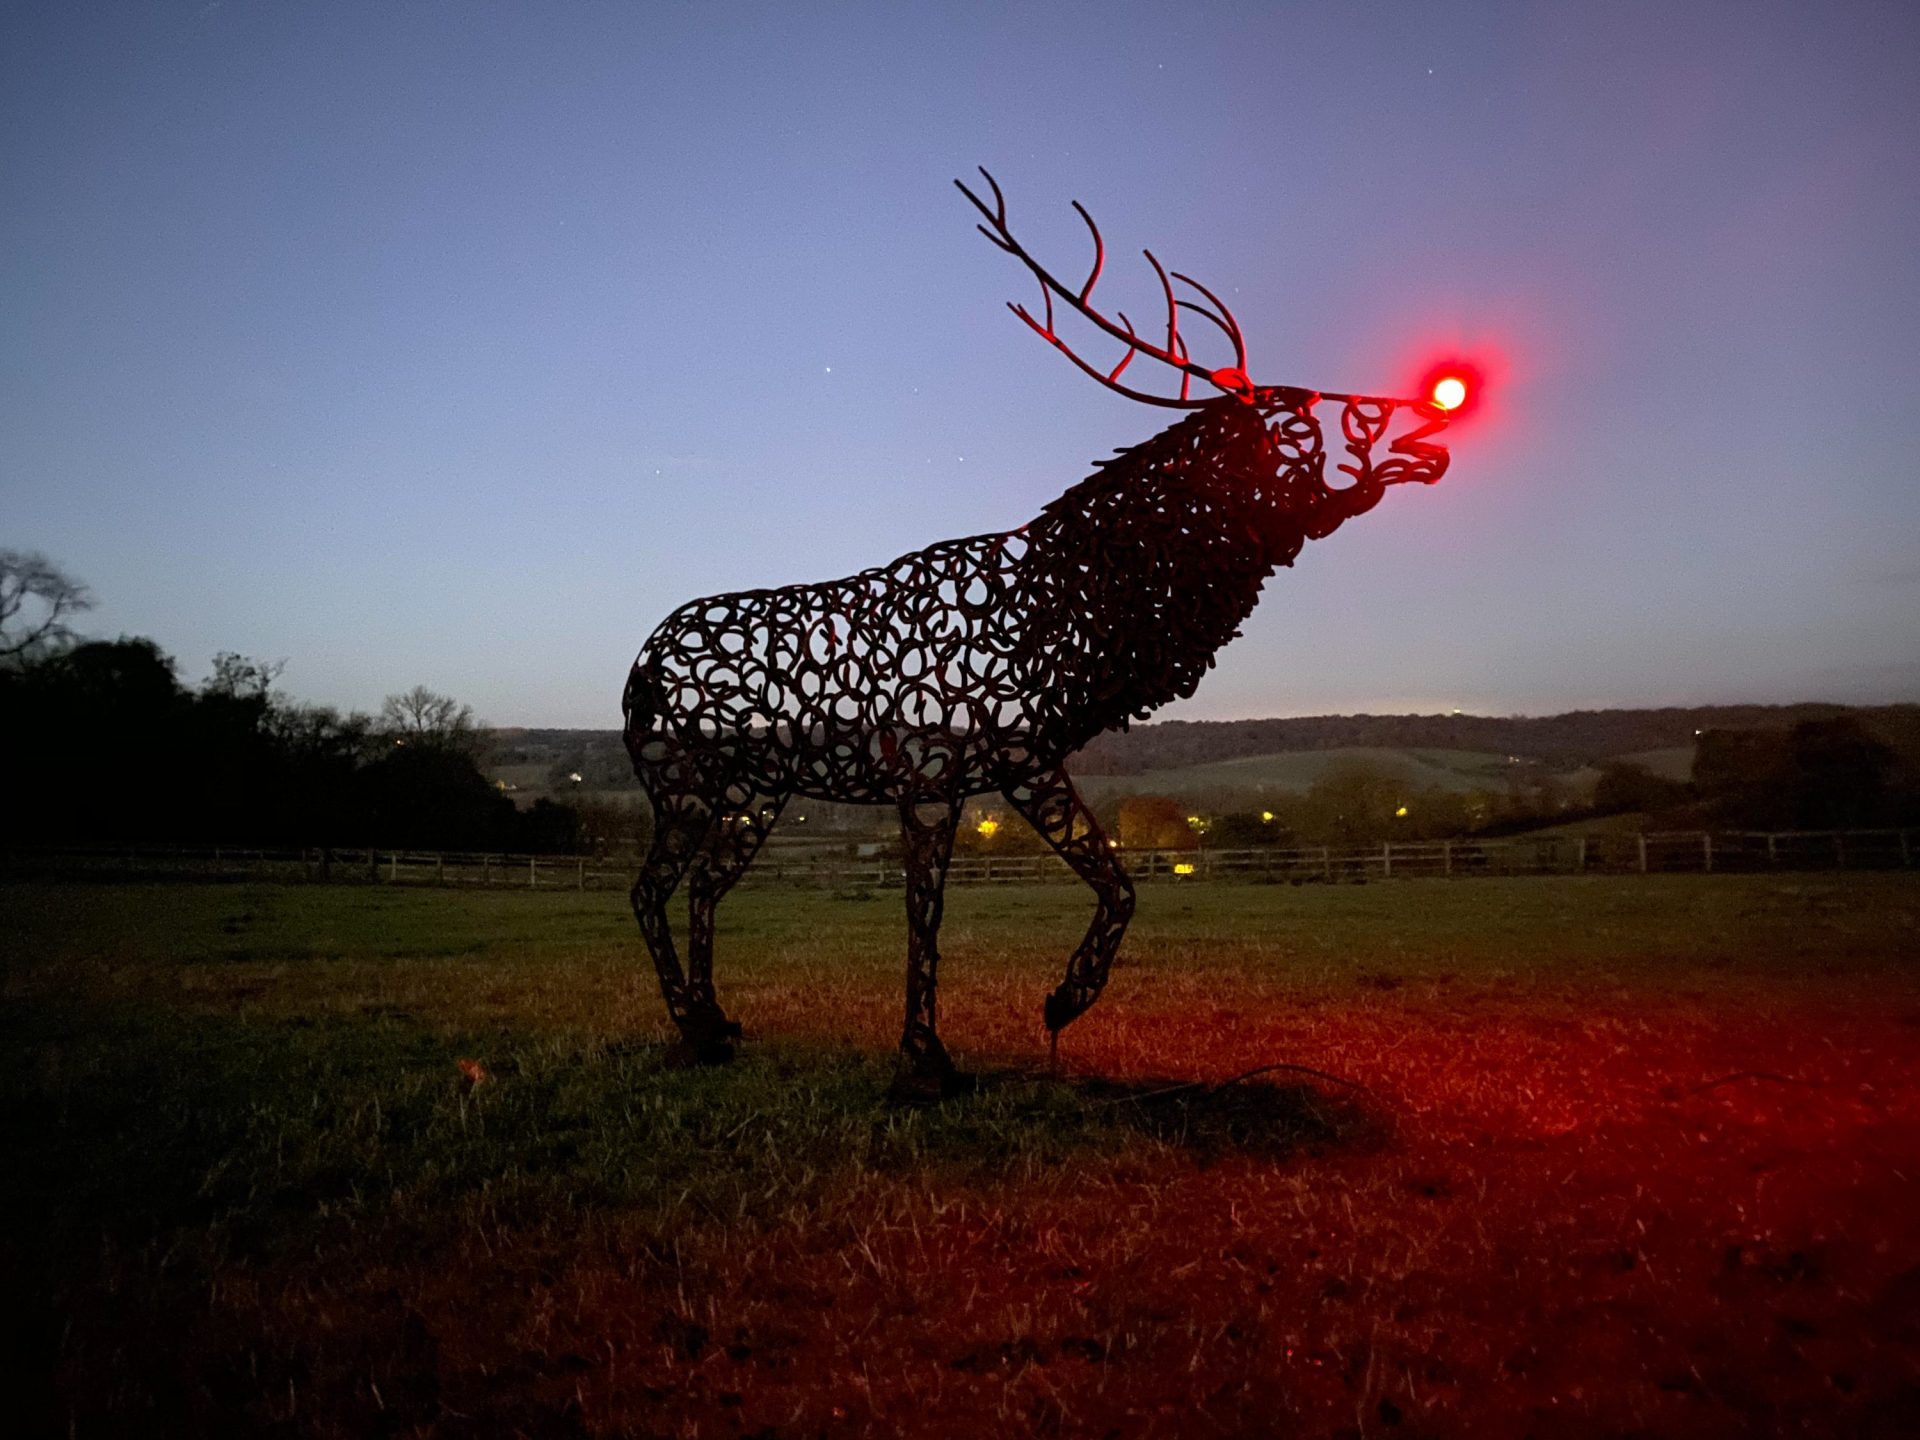 Bellowing Stag Sculpture With Red Light